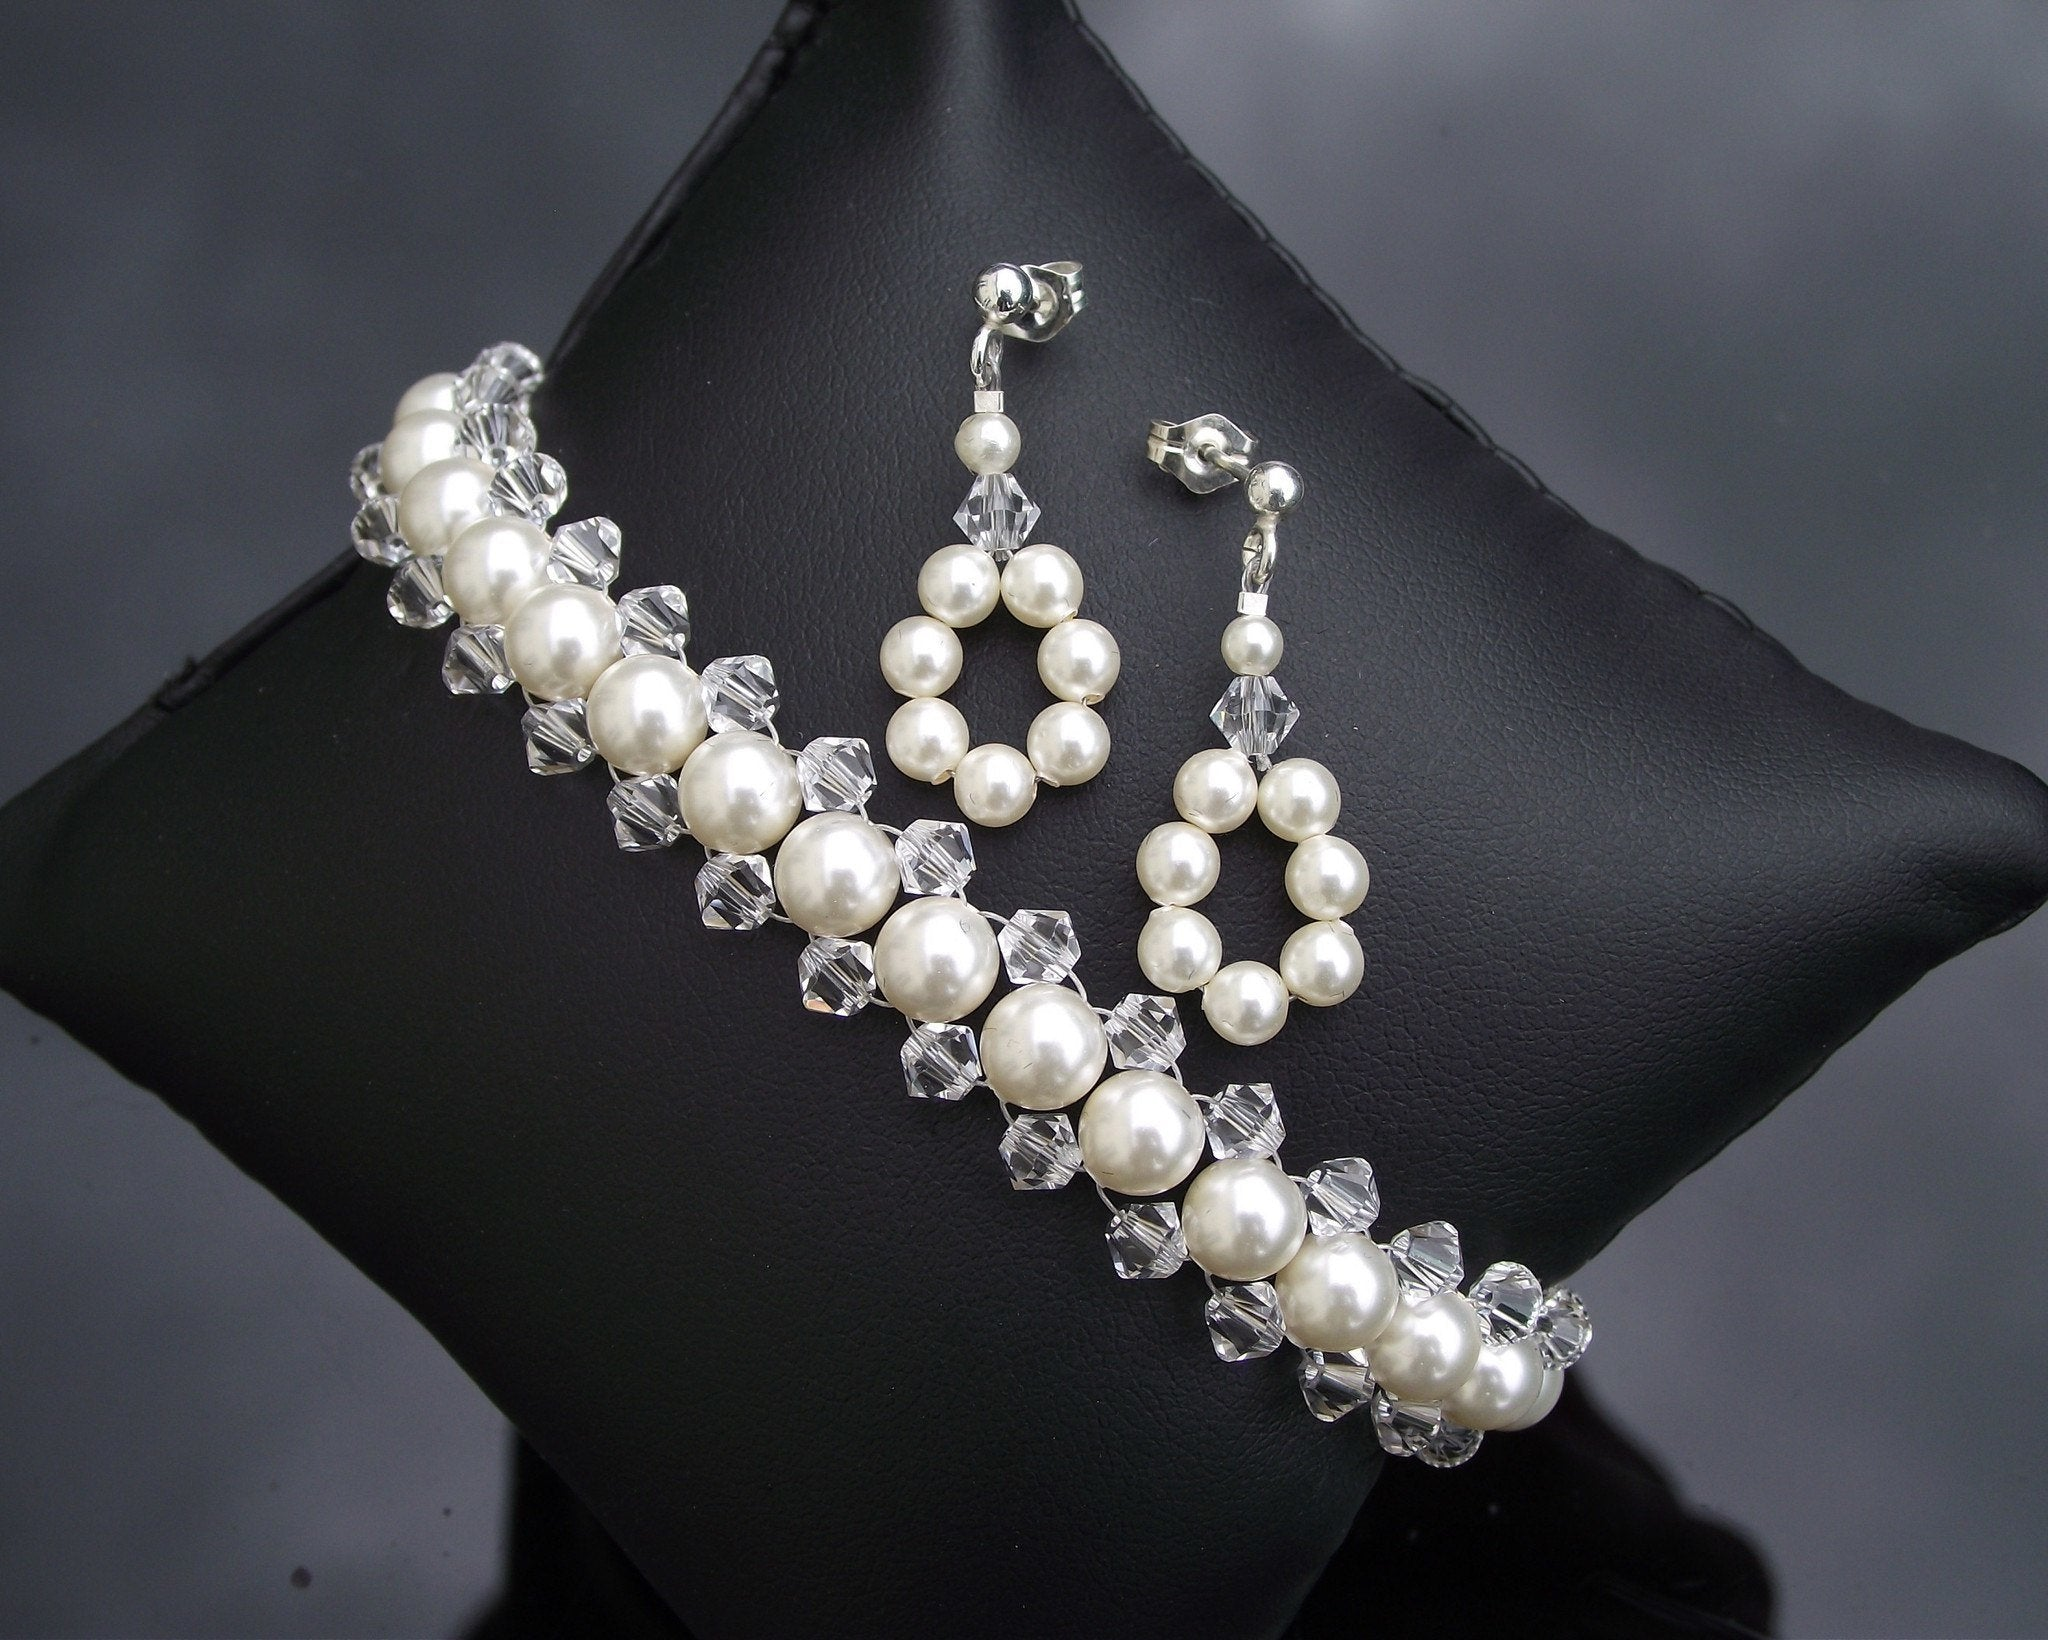 Woven Pearl and Crystal Bridesmaids Bracelet and Earring Set Anabelle